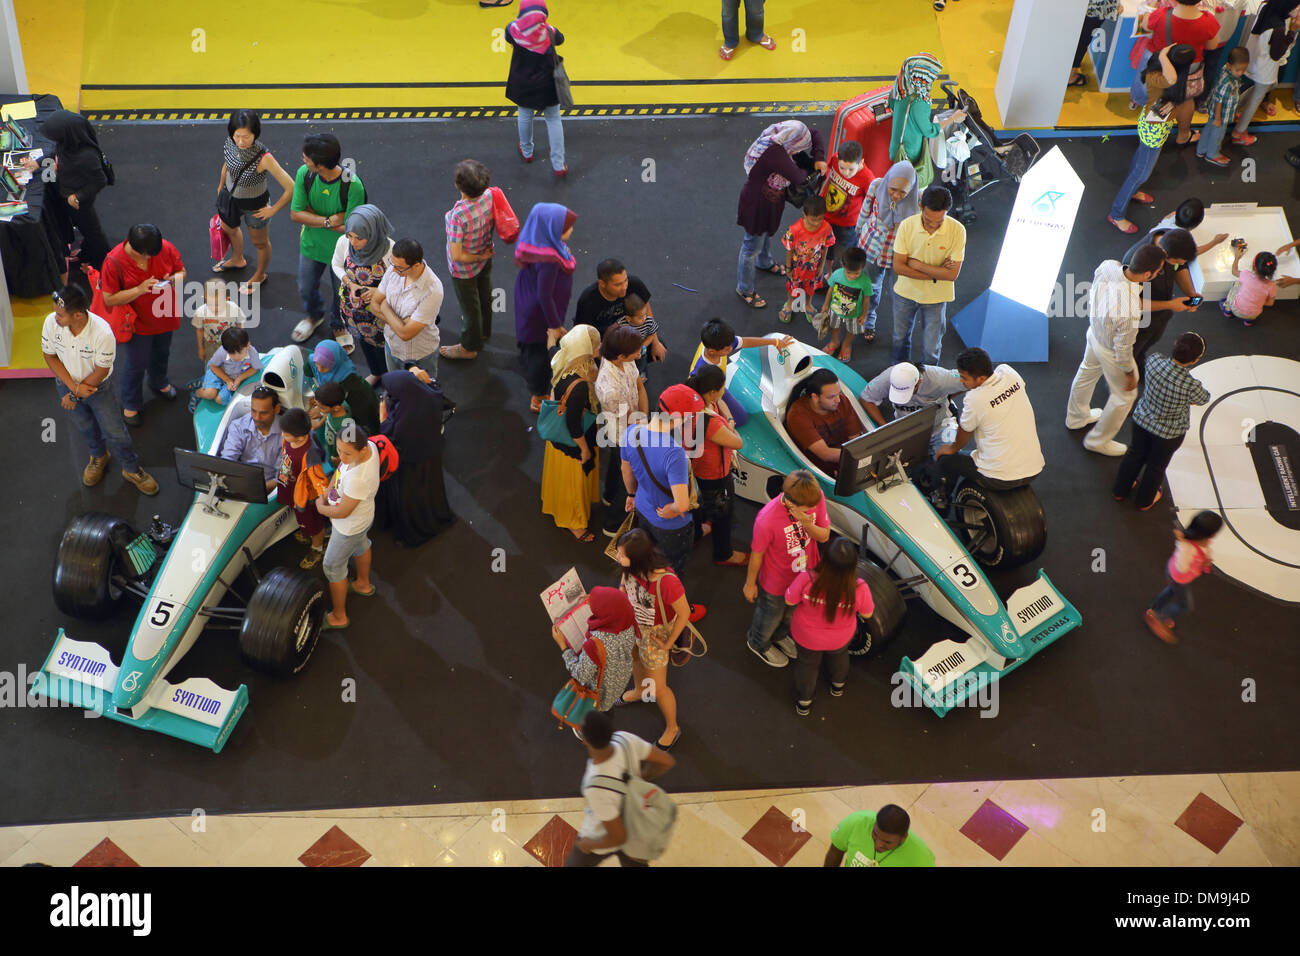 Crowd looking at Formula One Racing car display in Suria KLCC mall - Stock Image